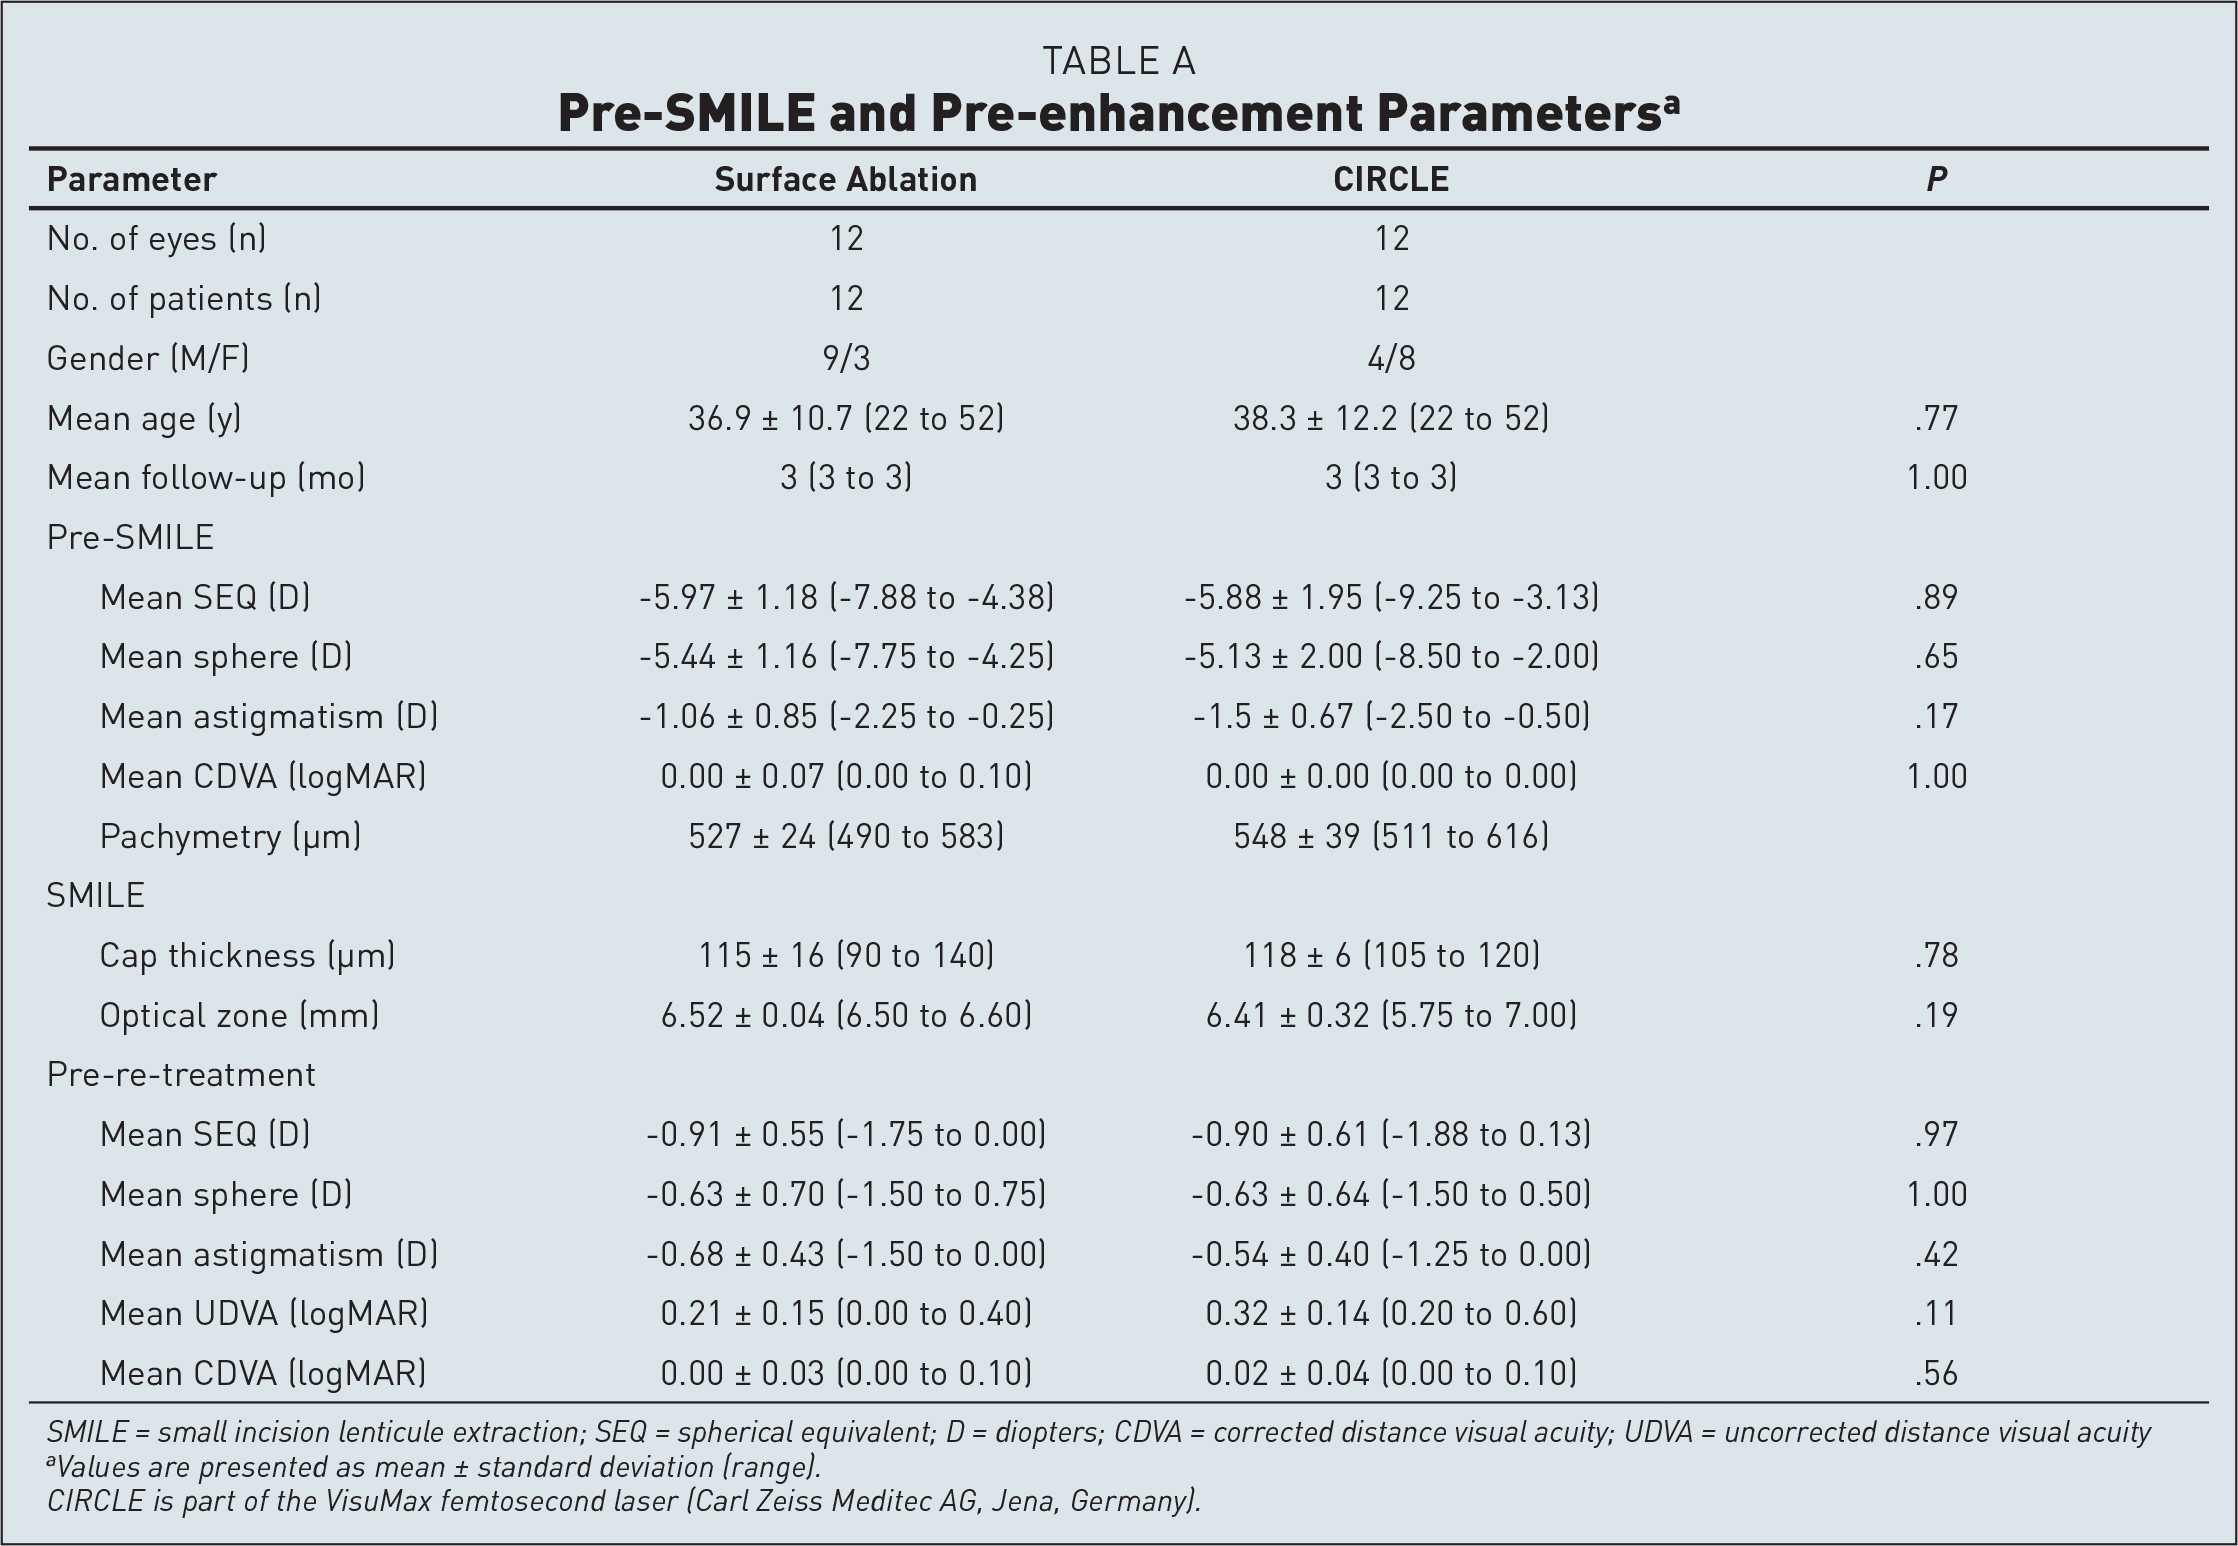 Pre-SMILE and Pre-enhancement Parametersa